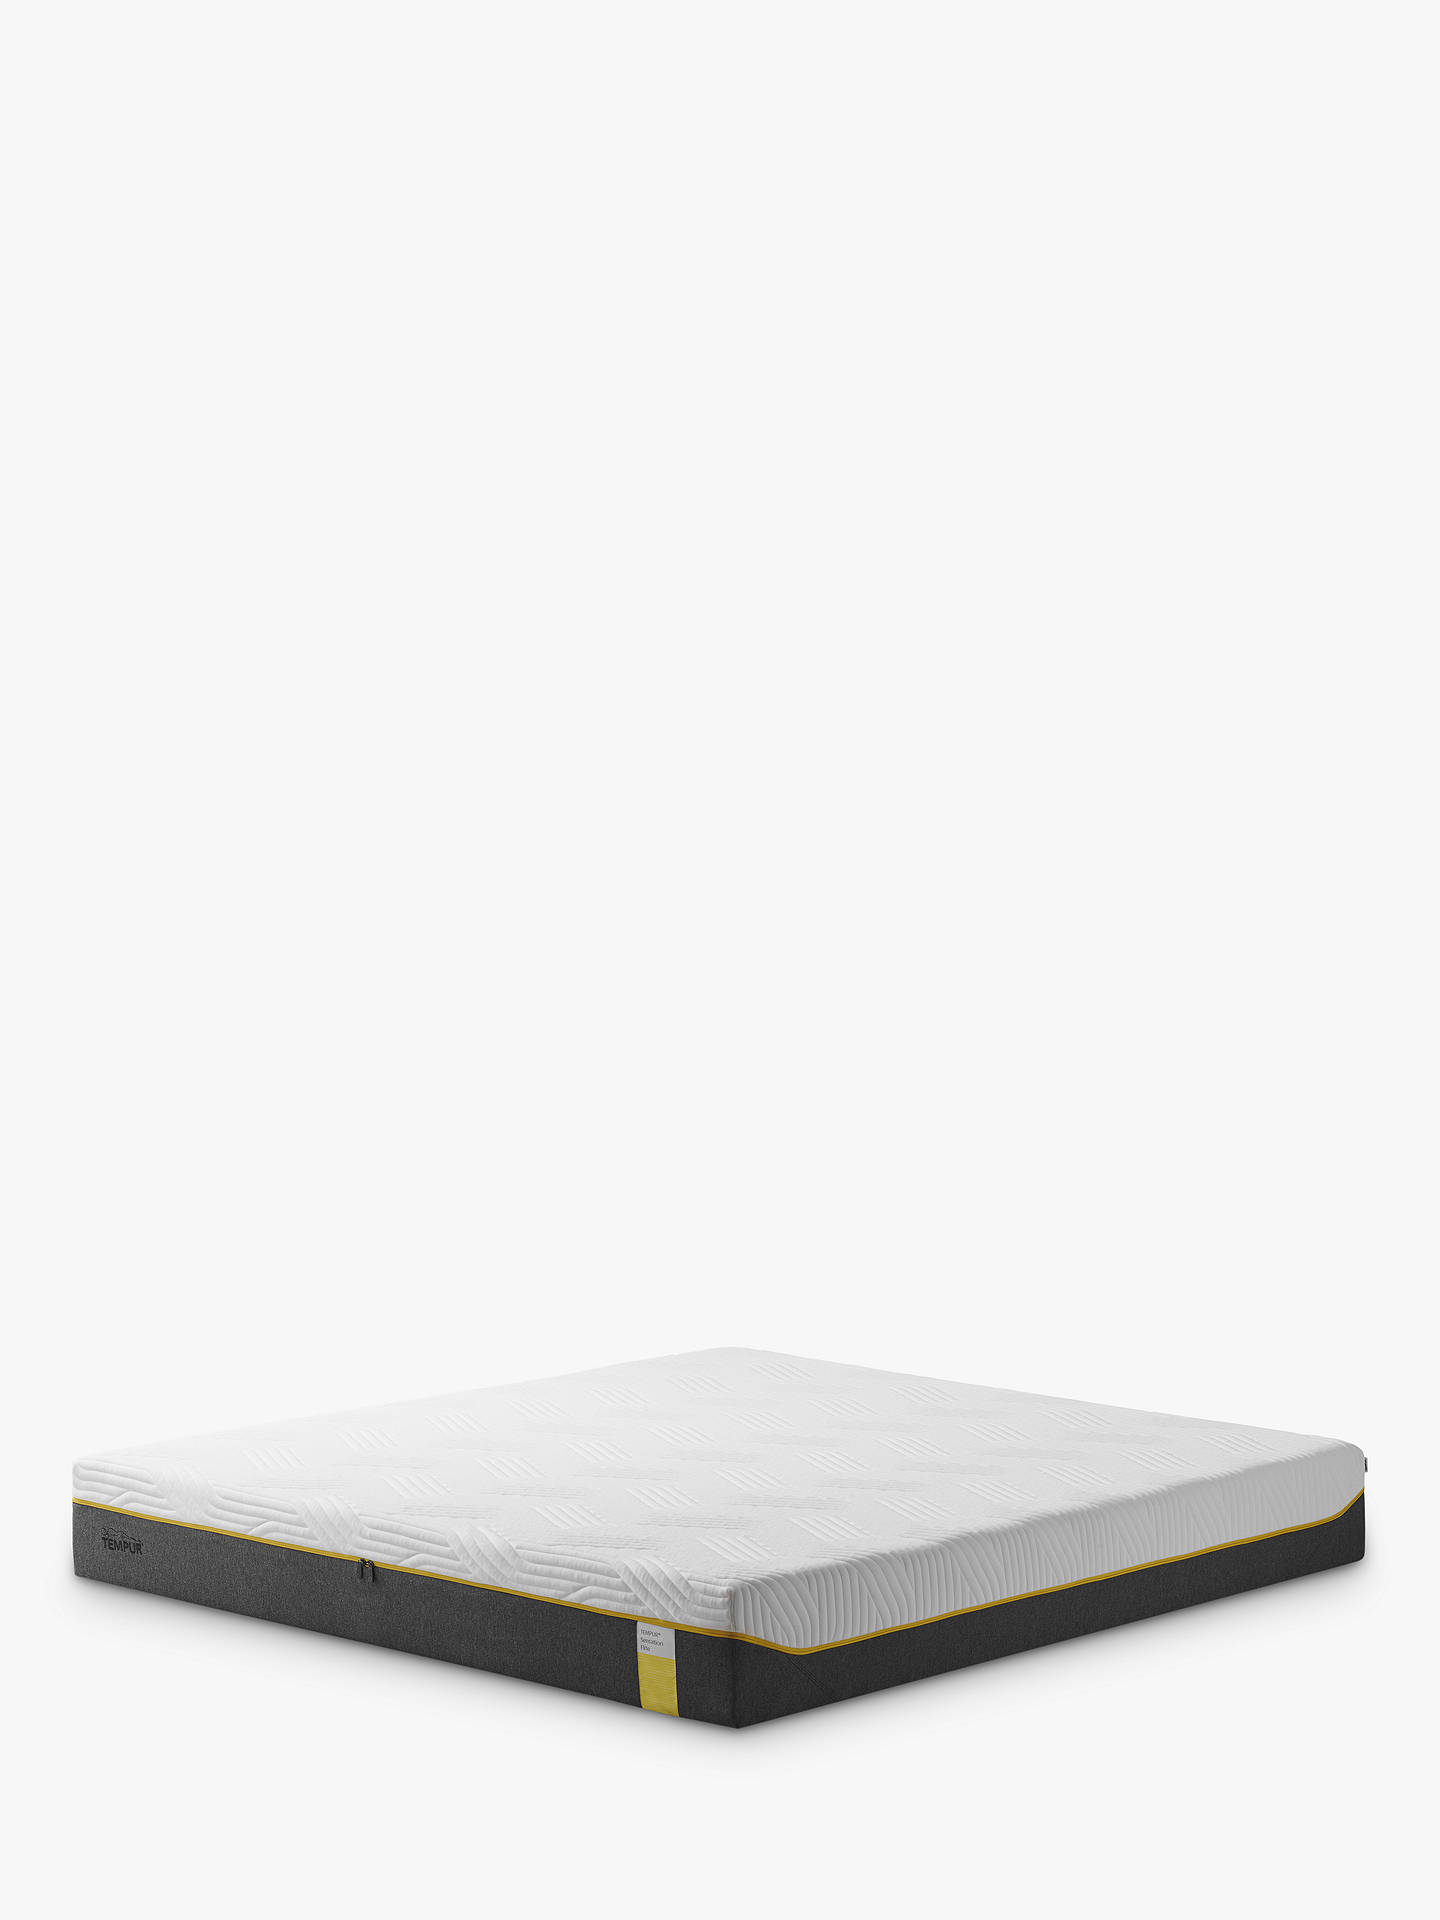 Buy Tempur Sensation Elite 25 Memory Foam Mattress, Firm Tension, King Size Online at johnlewis.com